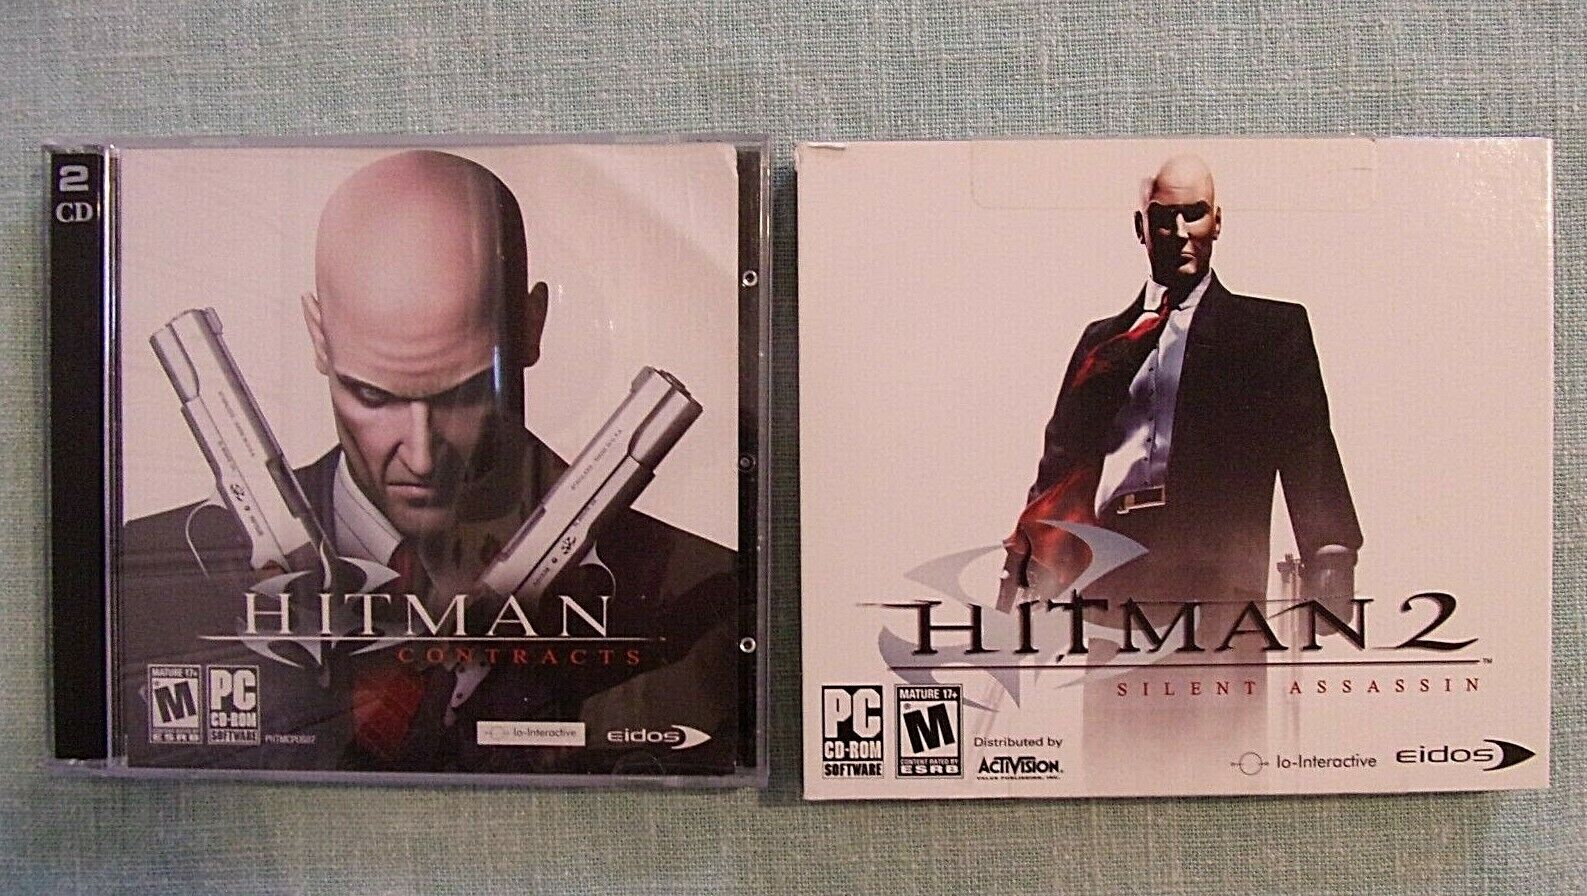 Computer Games - HITMAN & HITMAN 2: Silent Assassin PC/Computer Game CD-ROM